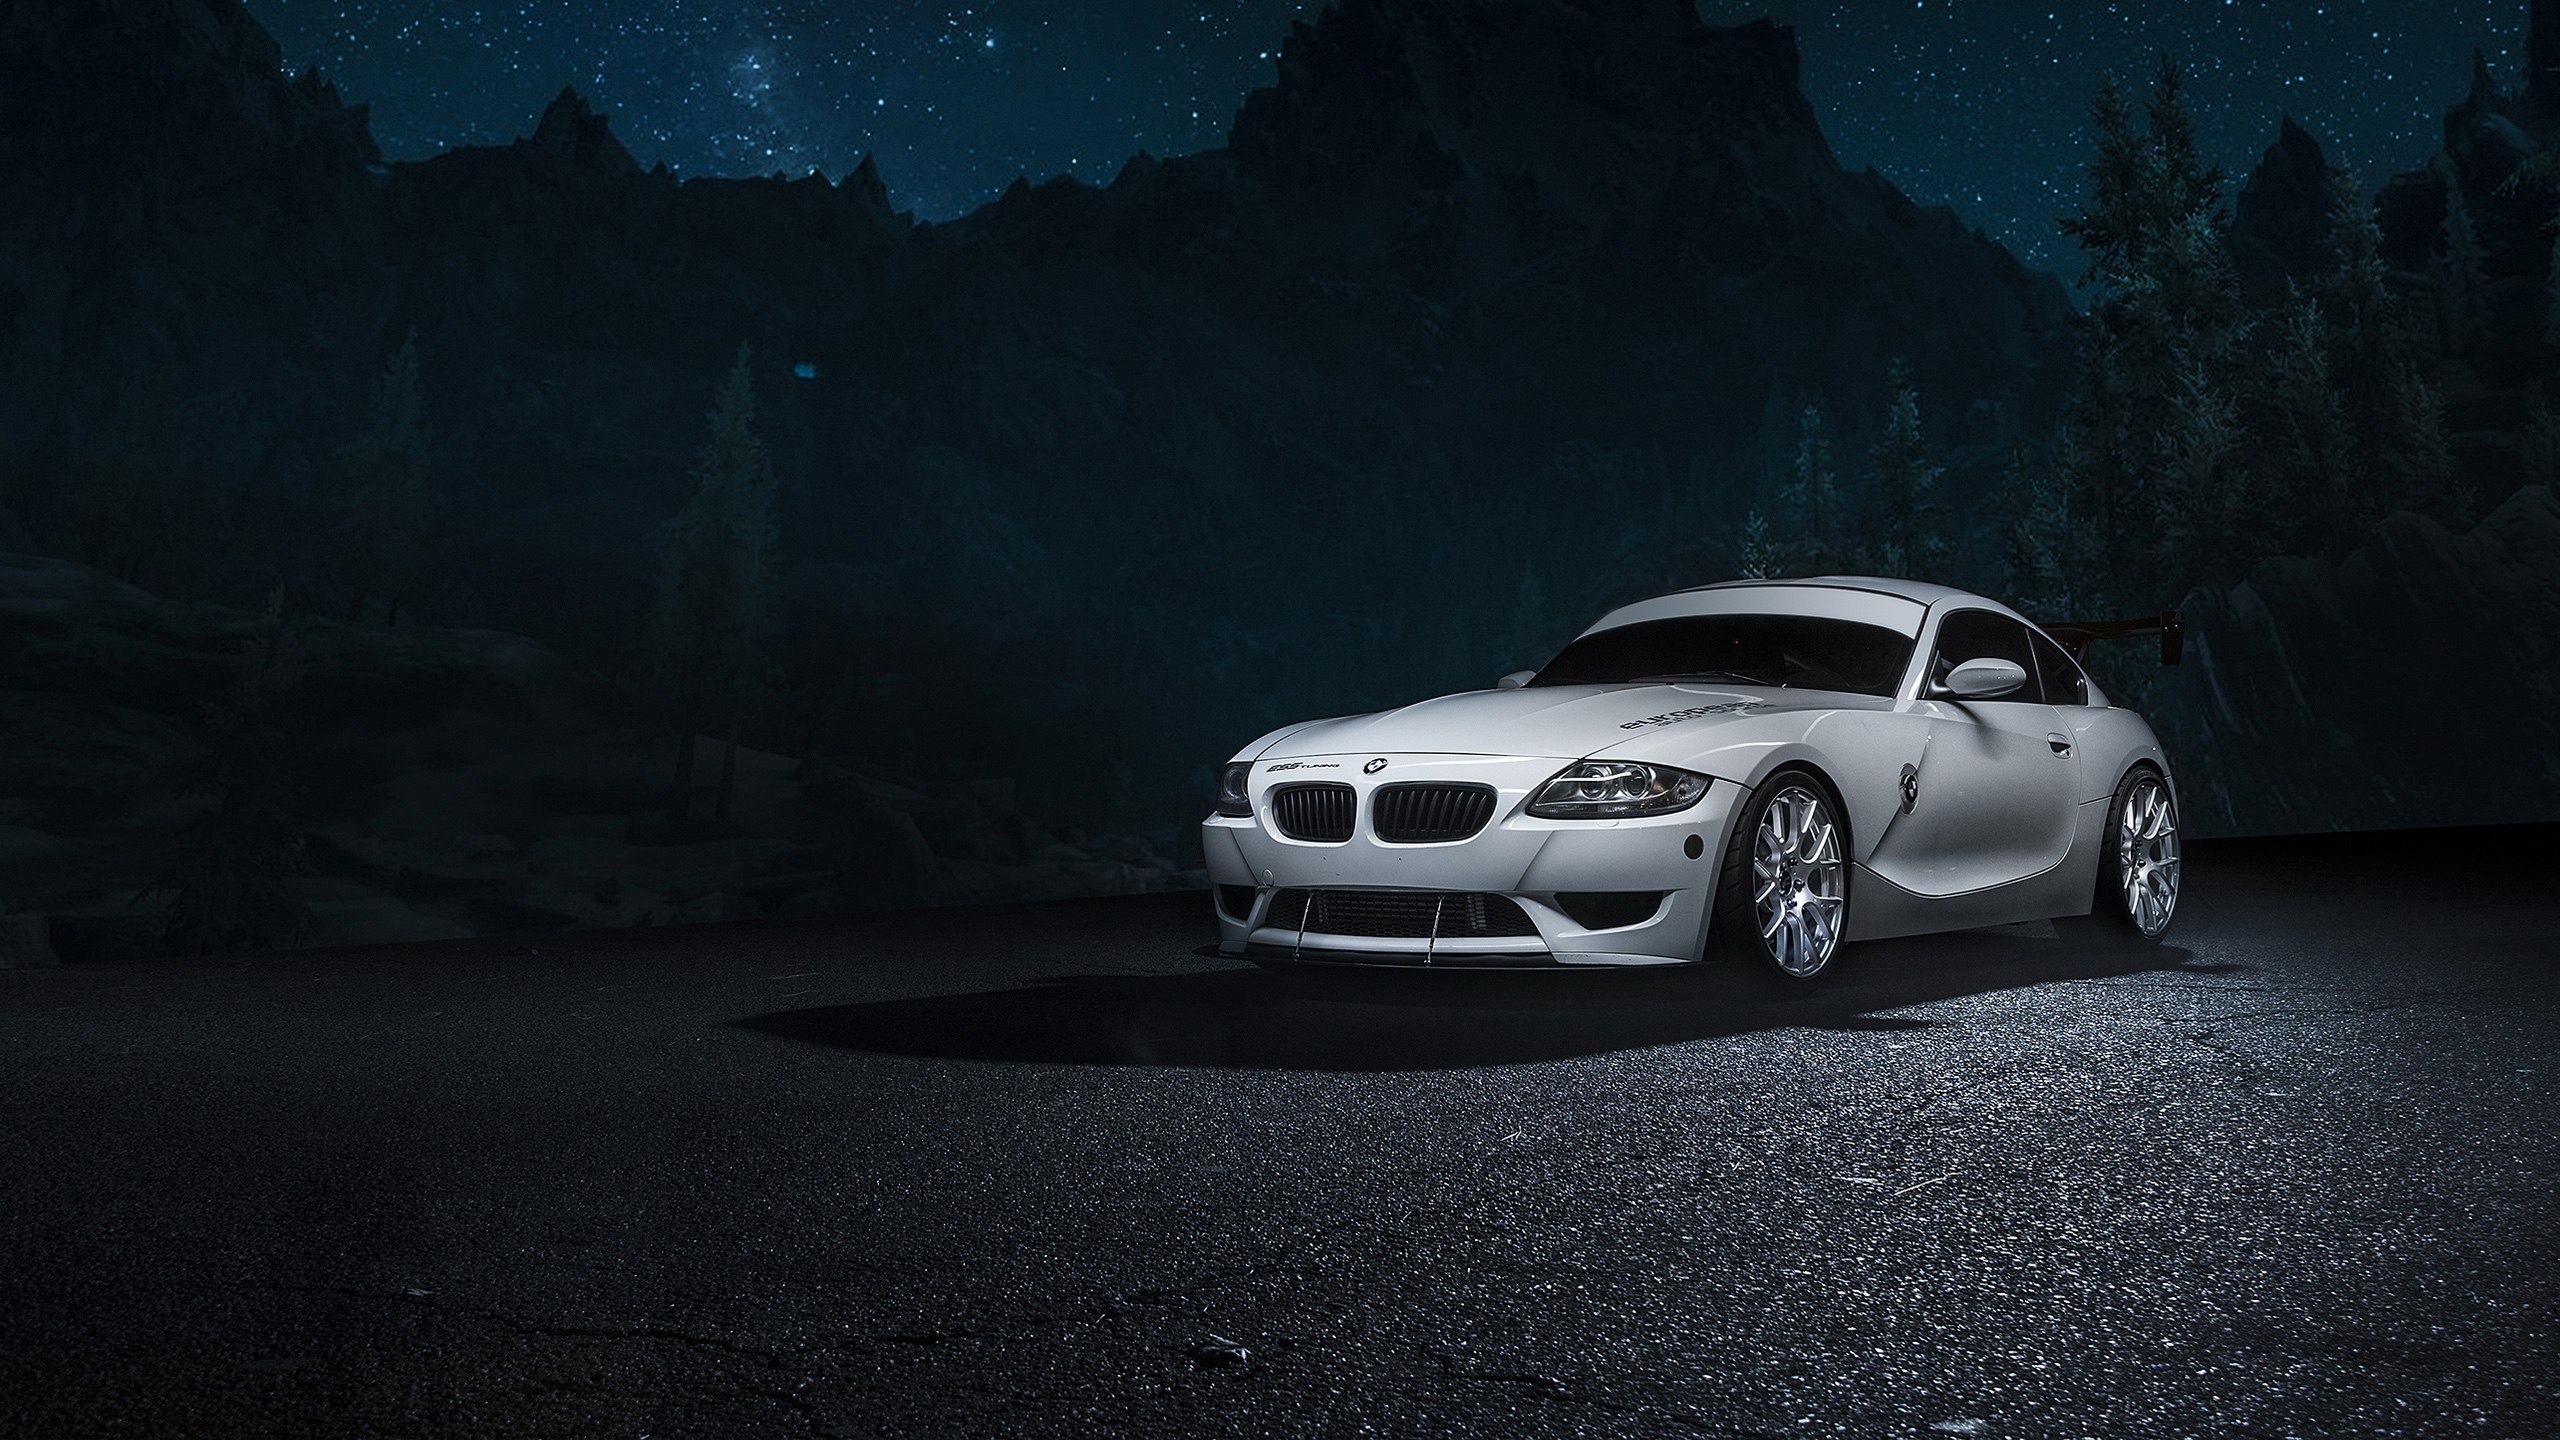 Mercedes Car Wallpapers For Windows 7 Bmw Z4 Wallpaper Hd Car Wallpapers Id 6386